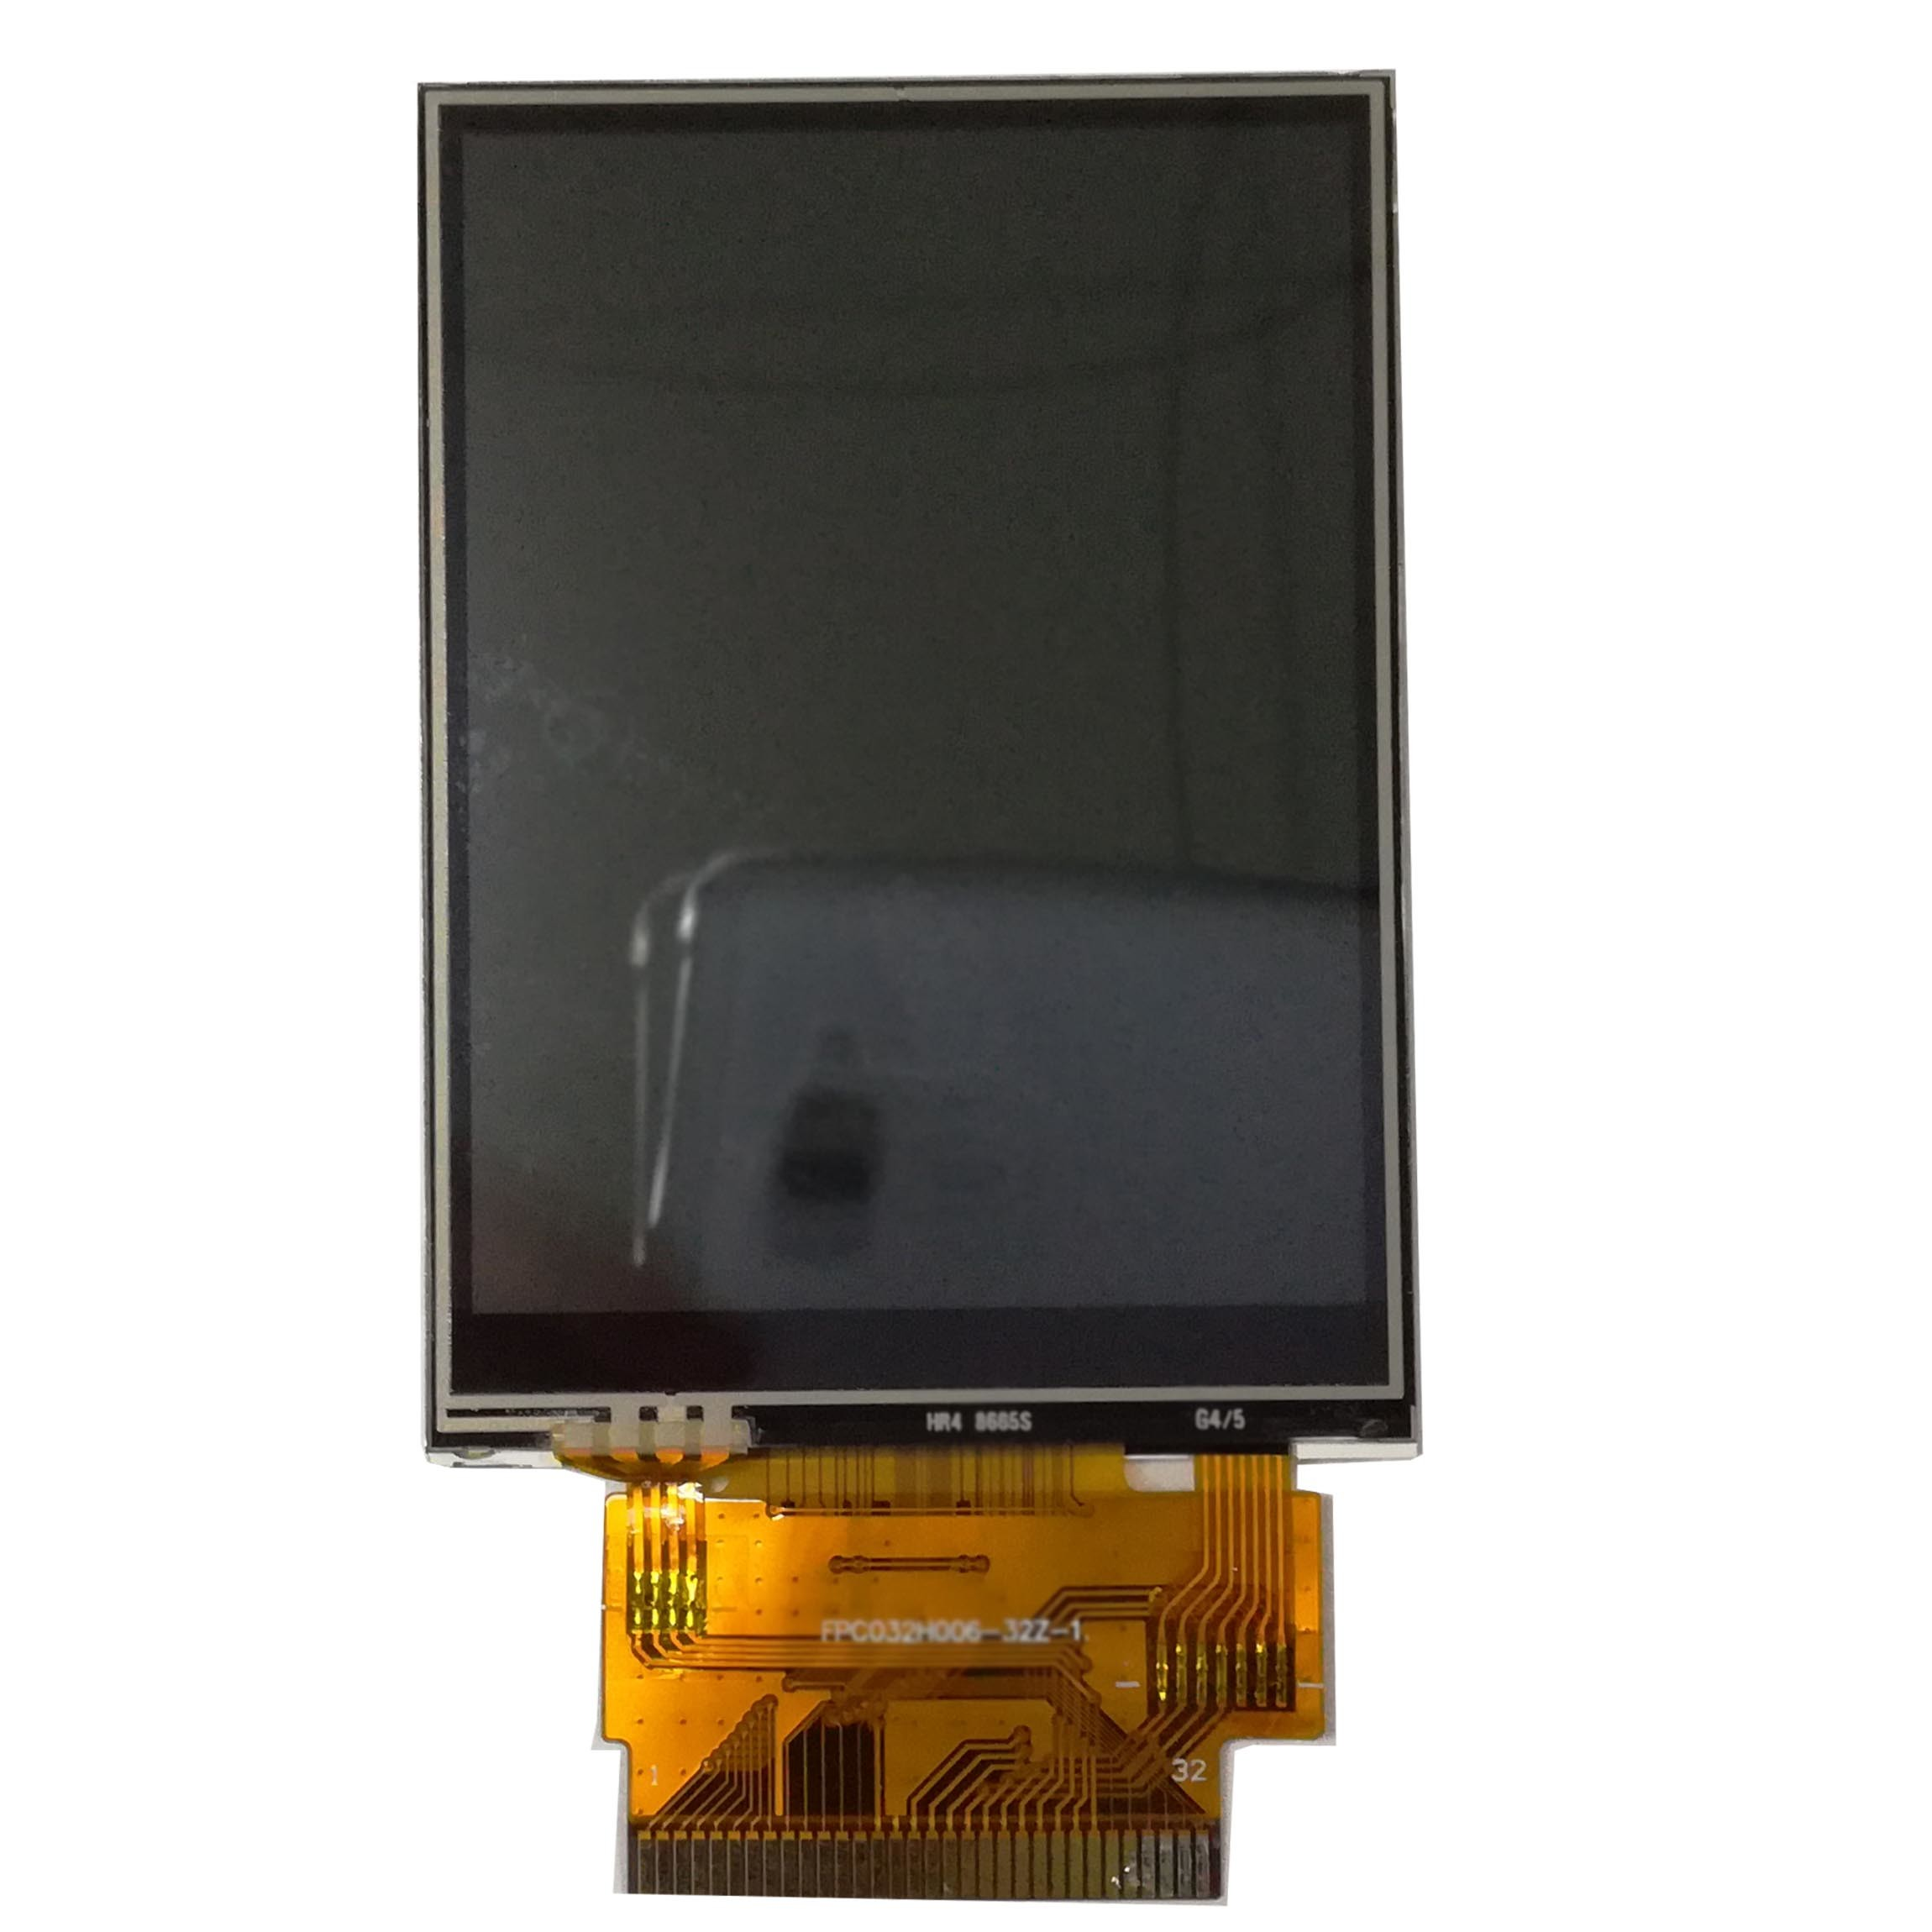 3.2 Inch Customizable TFT LCD Module with Resistive Touch Panel